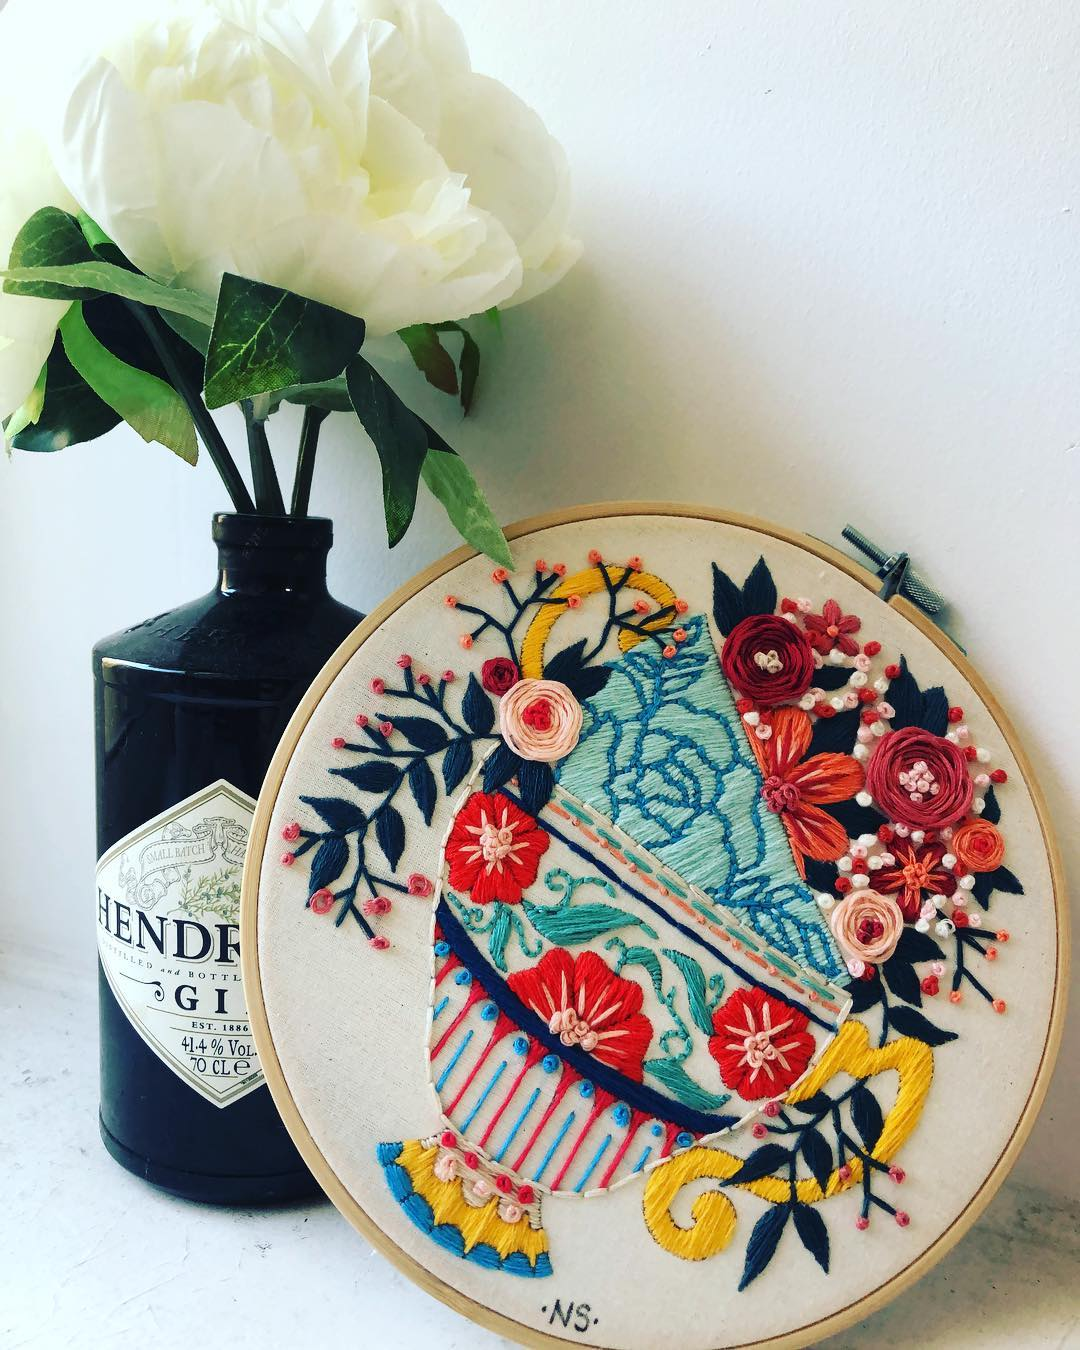 Embroidery hoop art by Natalie Sedgewick